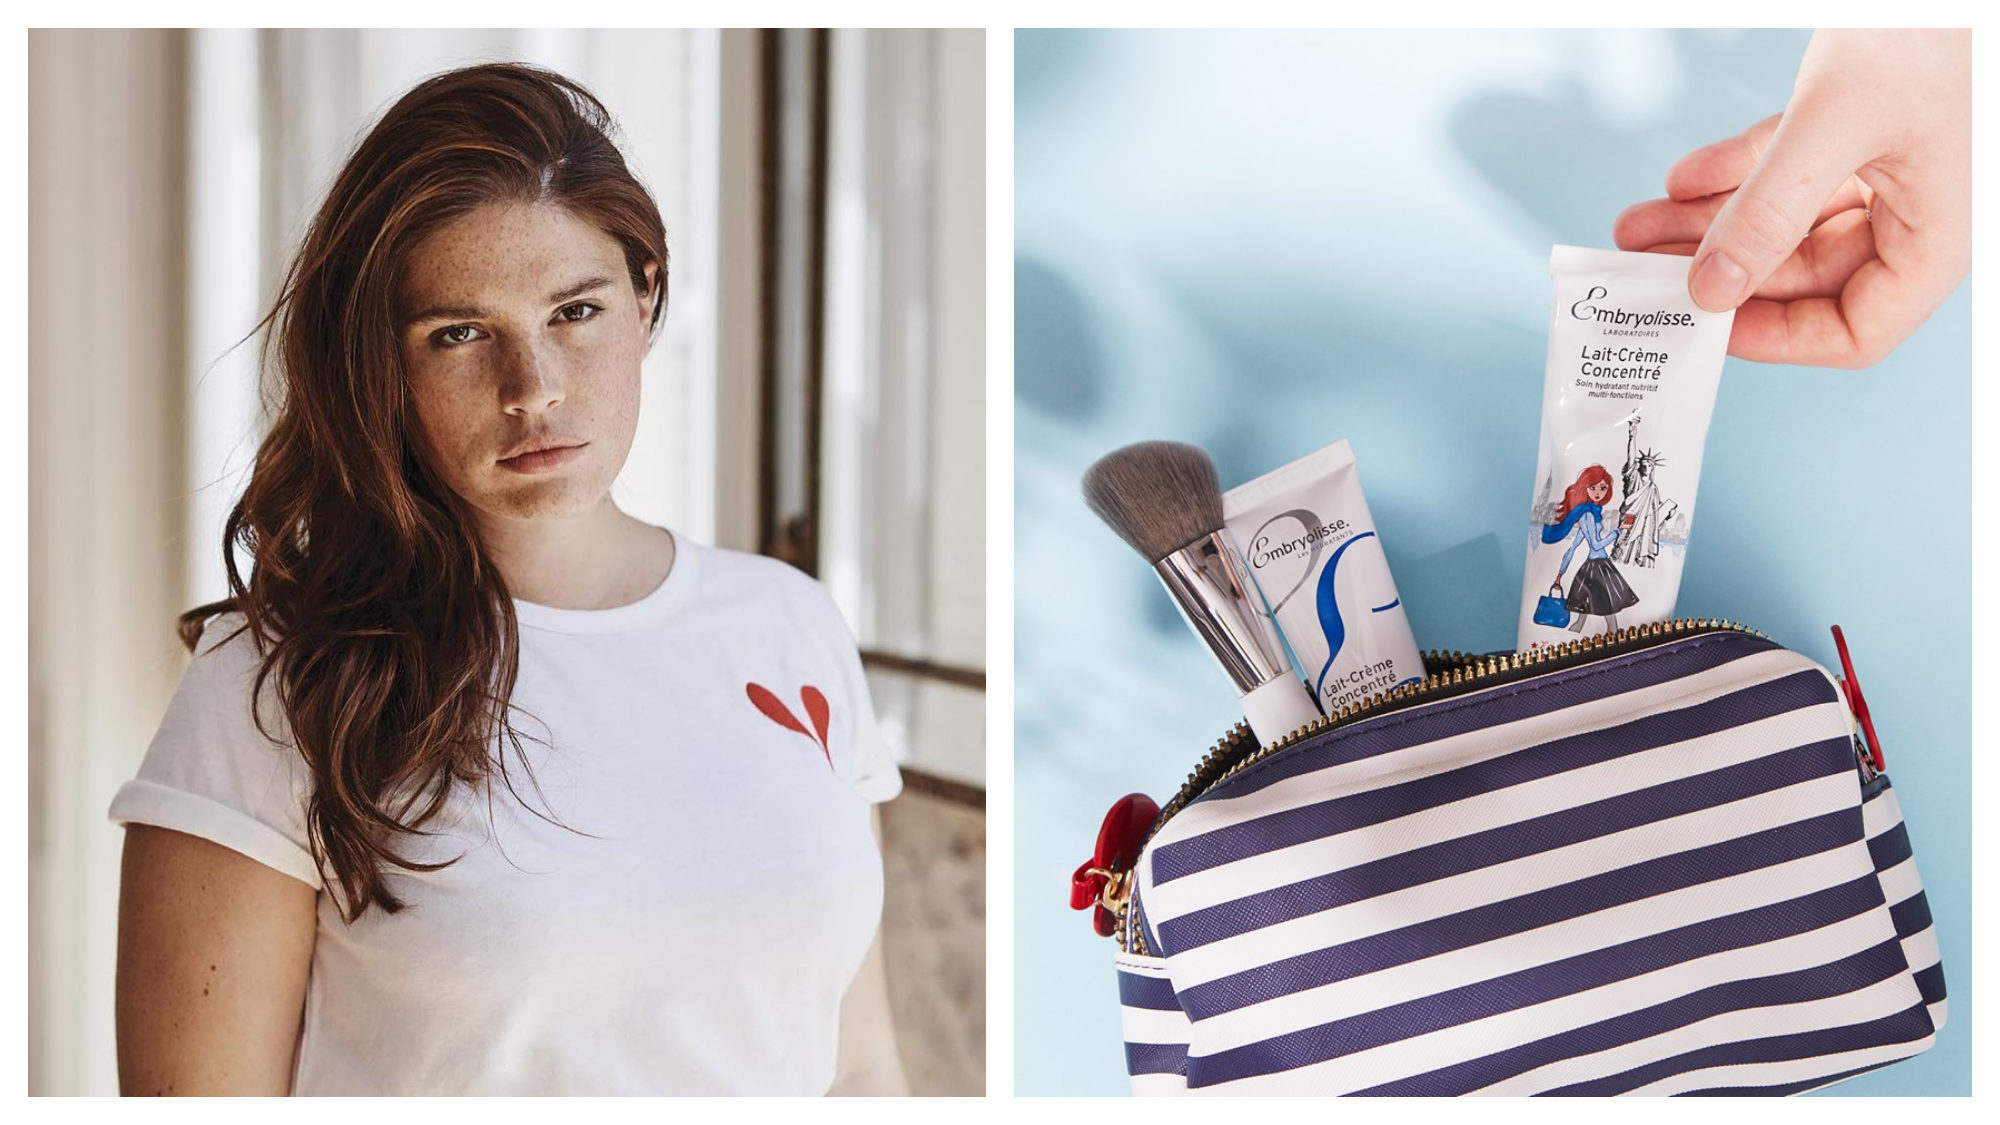 Girl with brown hair and white t-shirt with heart. Striped blue and white toiletry bag with makeup brush and Embryolisse cream